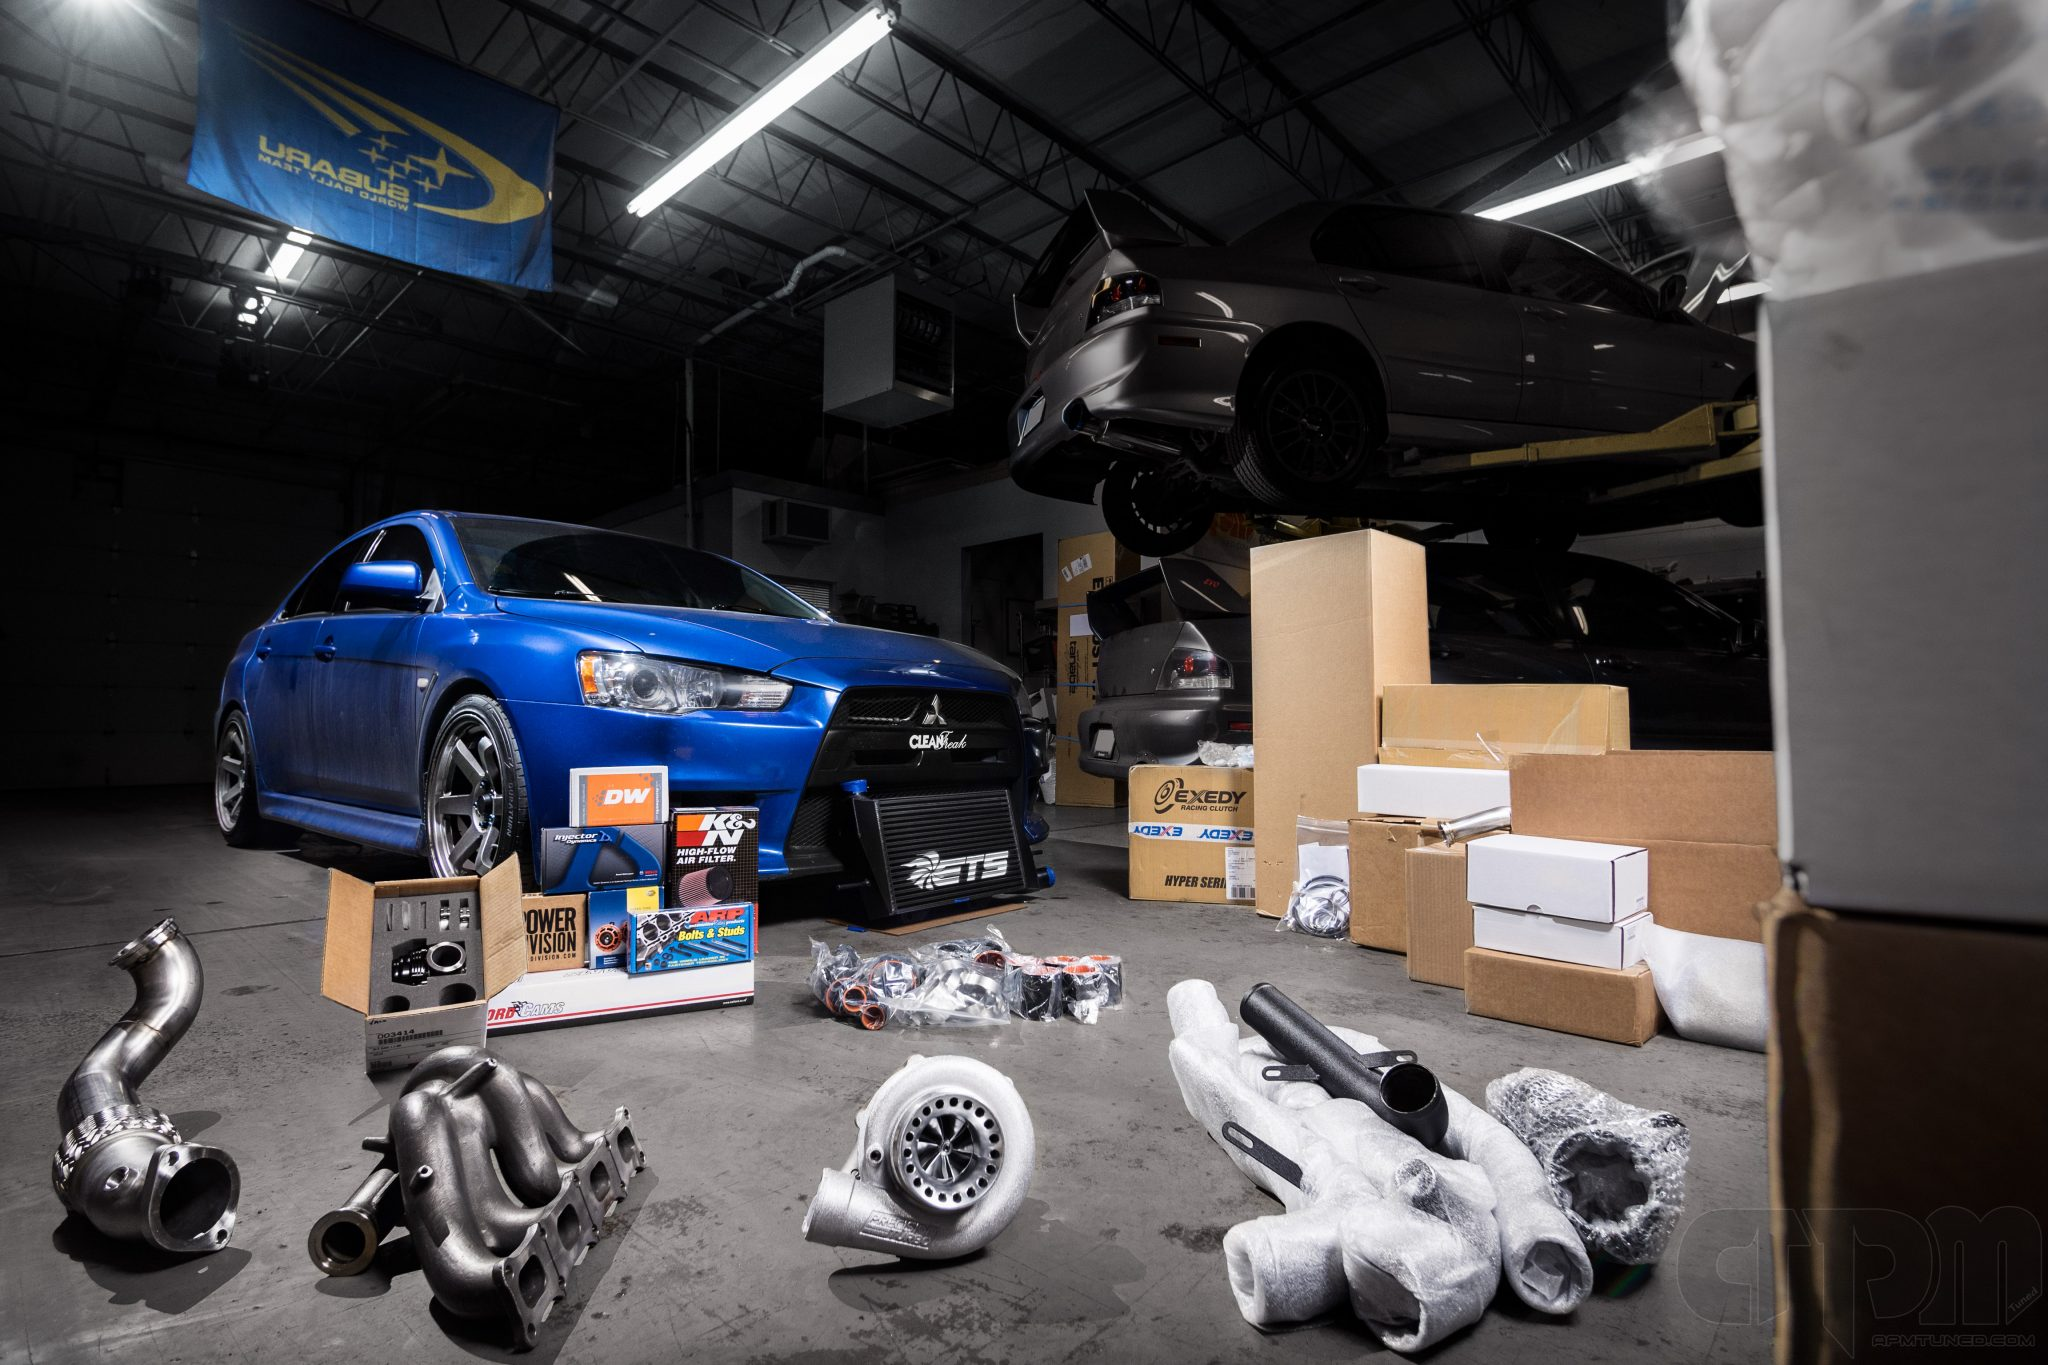 Blue Mitsubishi in our shop with dozens of brand new parts infront of it, ready to be installed. Some but not all included are a brand new turbocharger, headers, uppipe, downpipe, intake, exedy clutch, fuel pump, intercooler, tial BOV and more